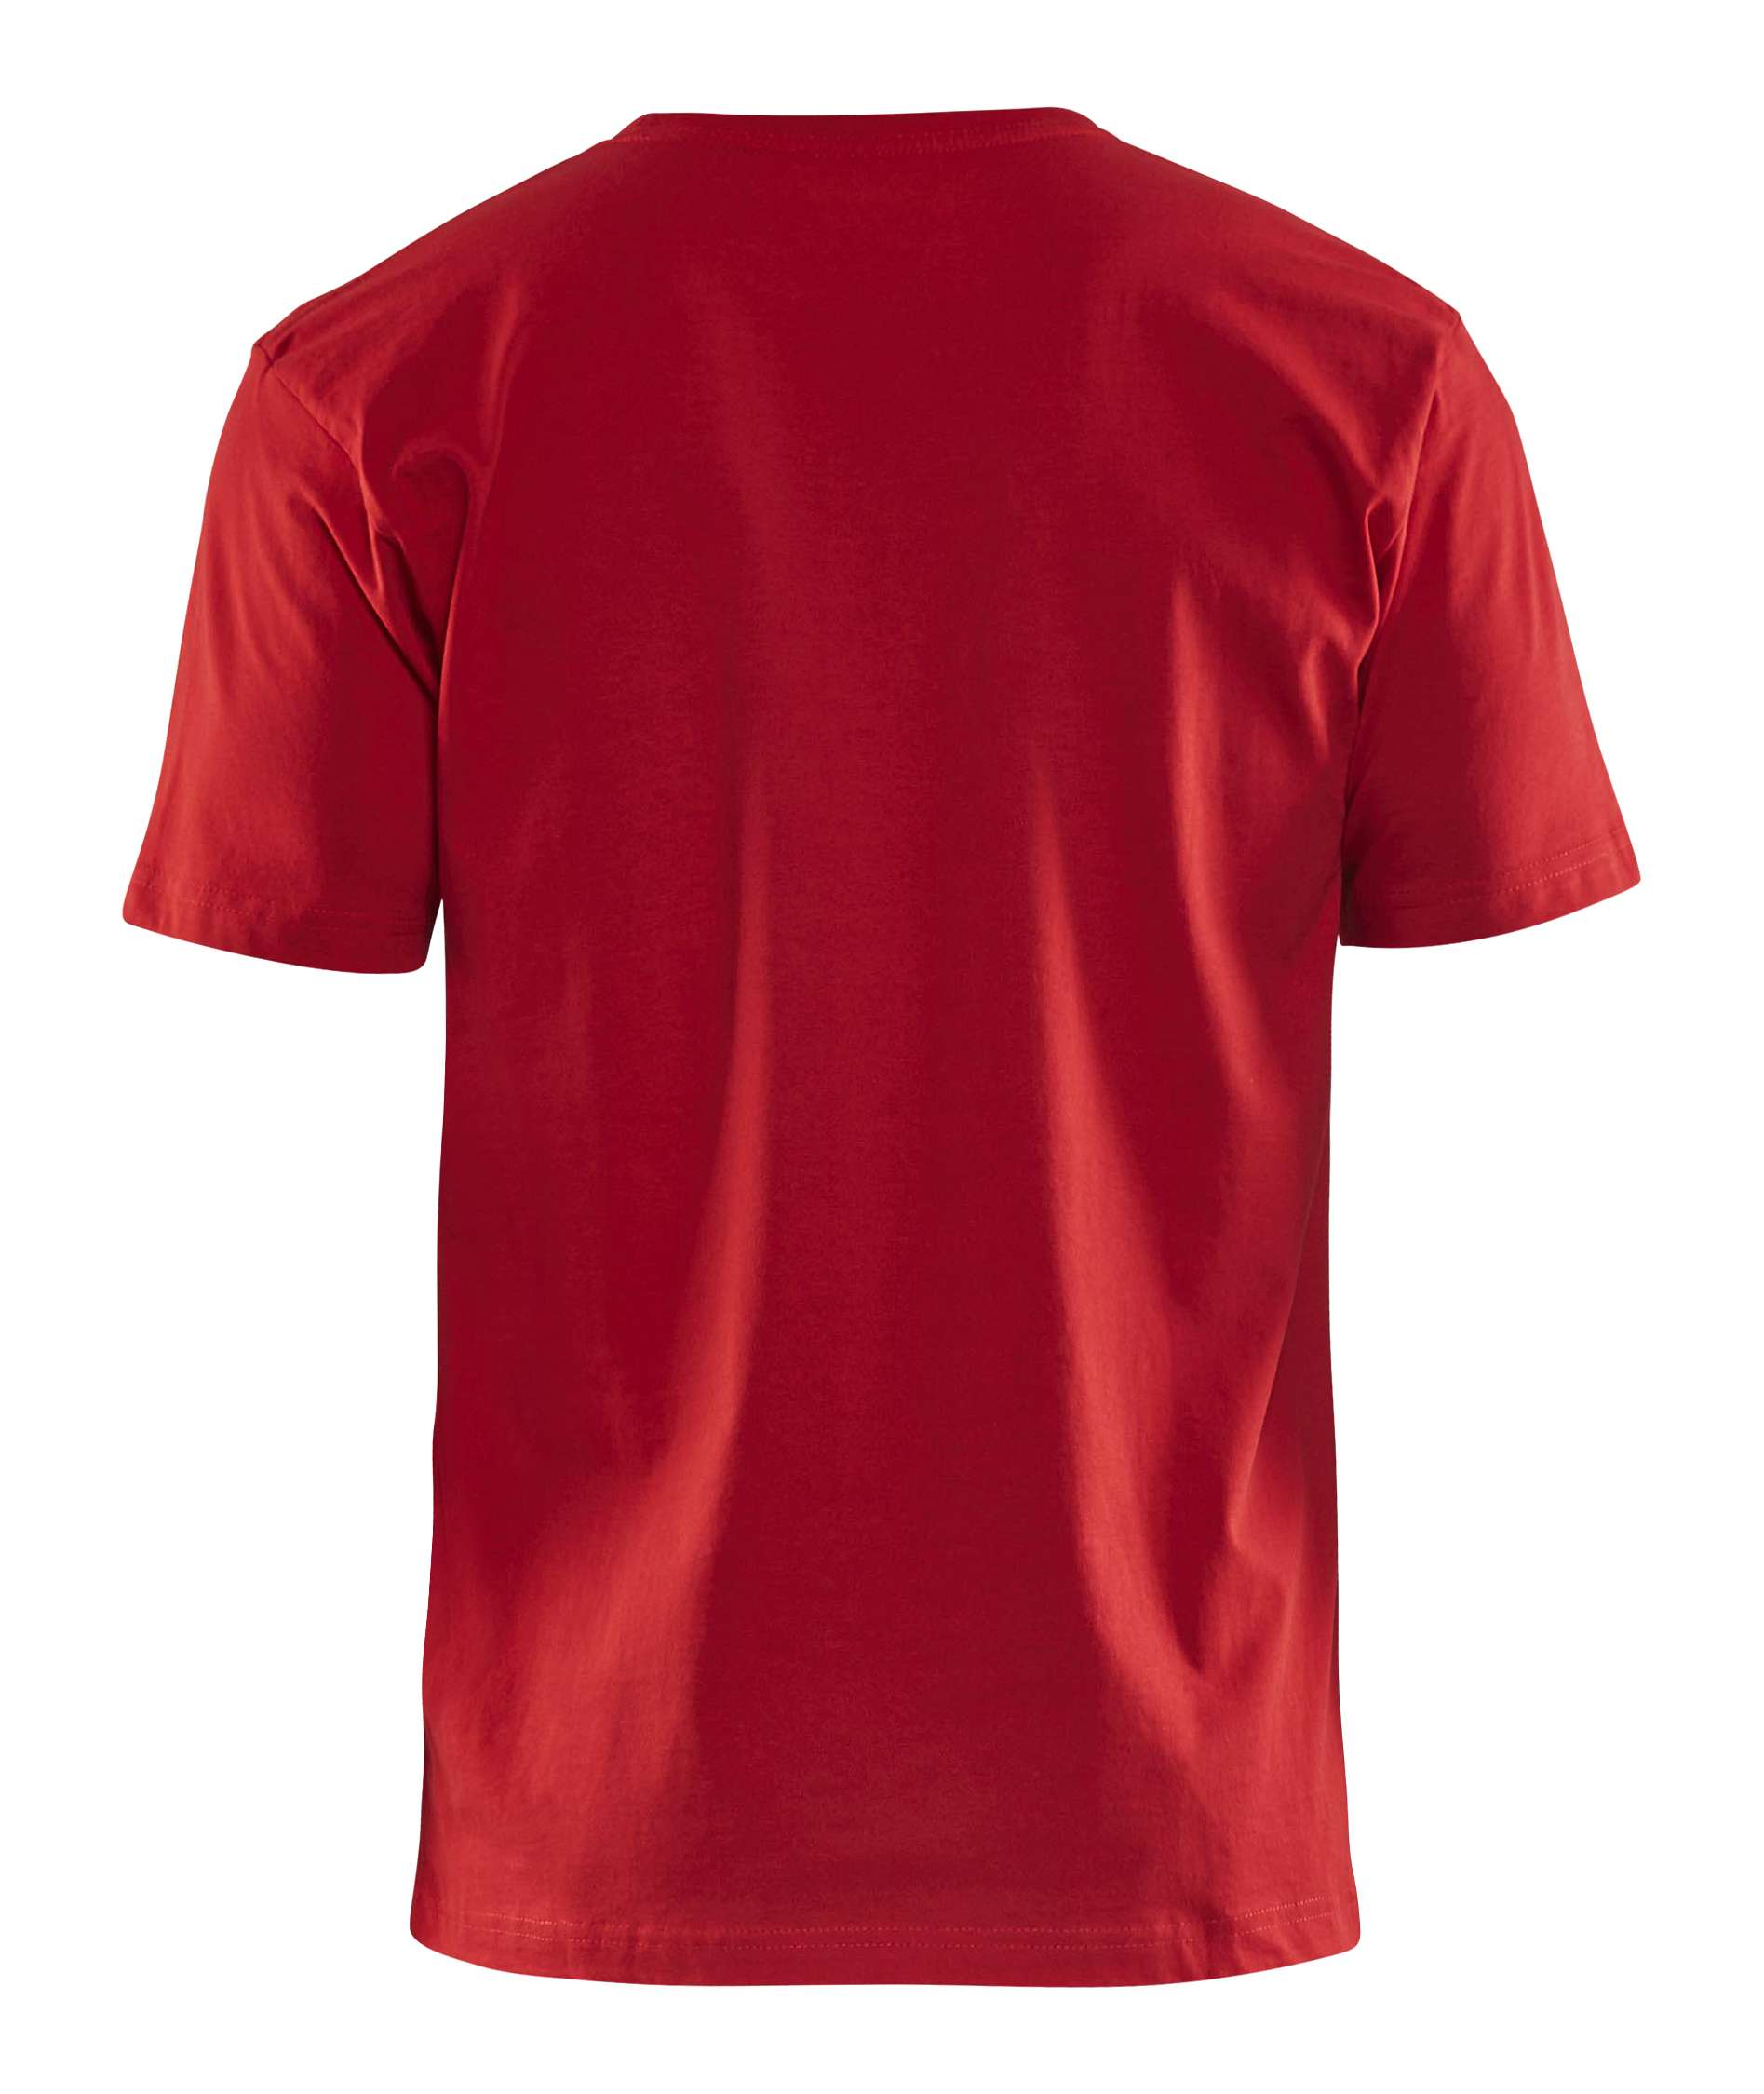 Blaklader T-shirts 33001030 rood(5600)